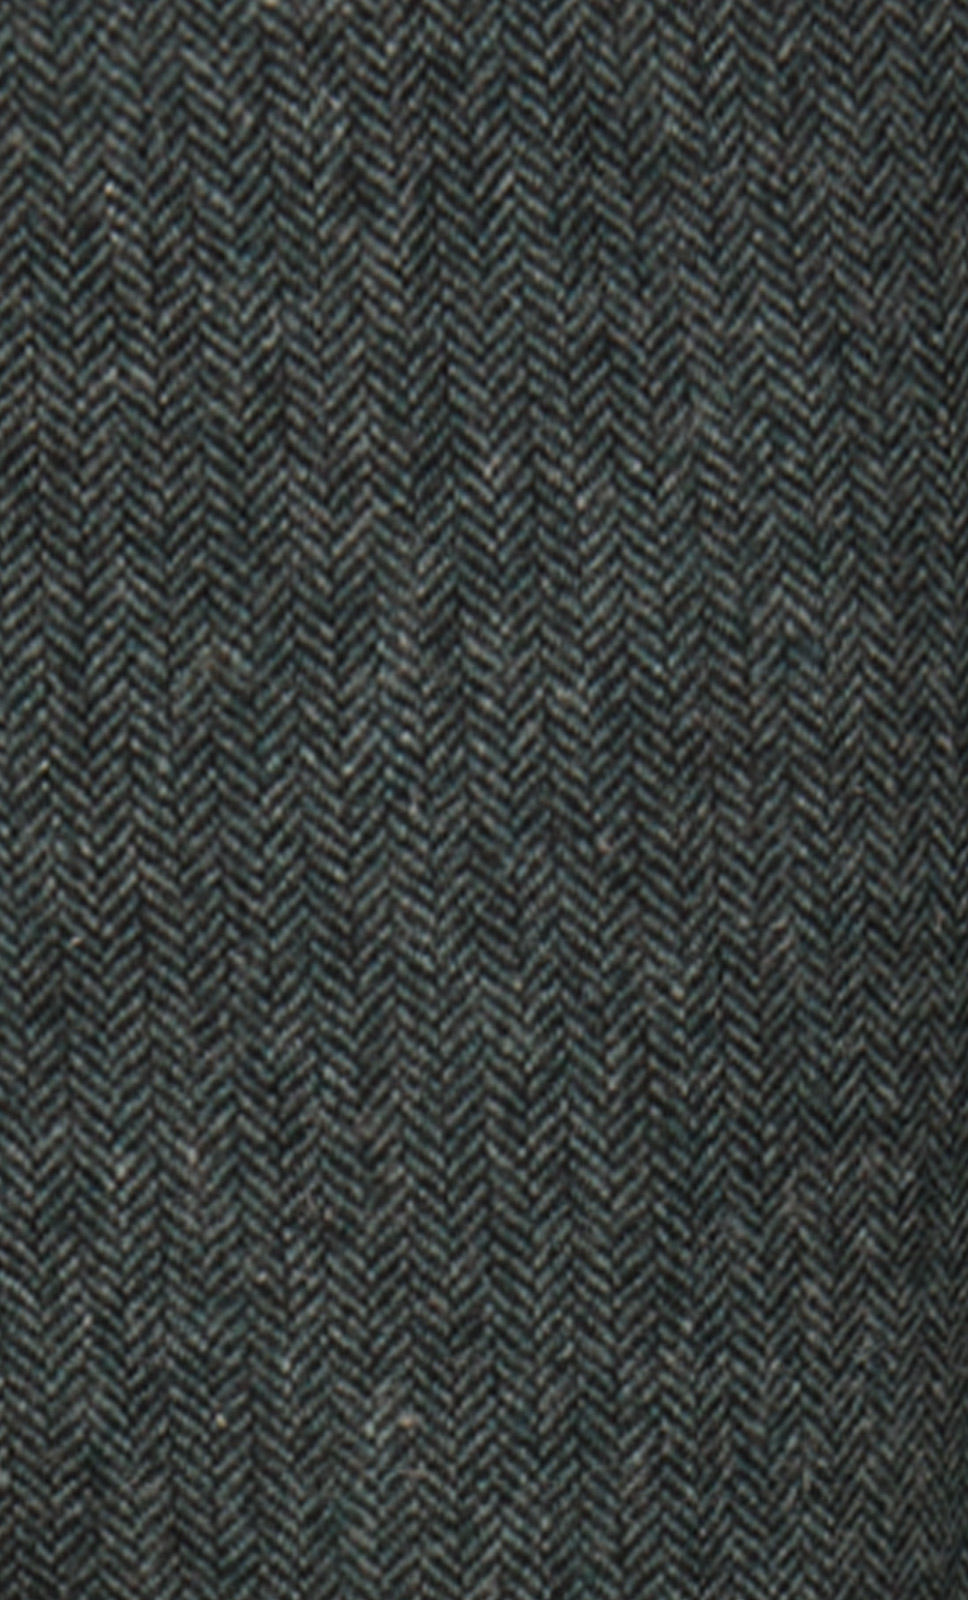 Herringbone-Dragonfly-Green